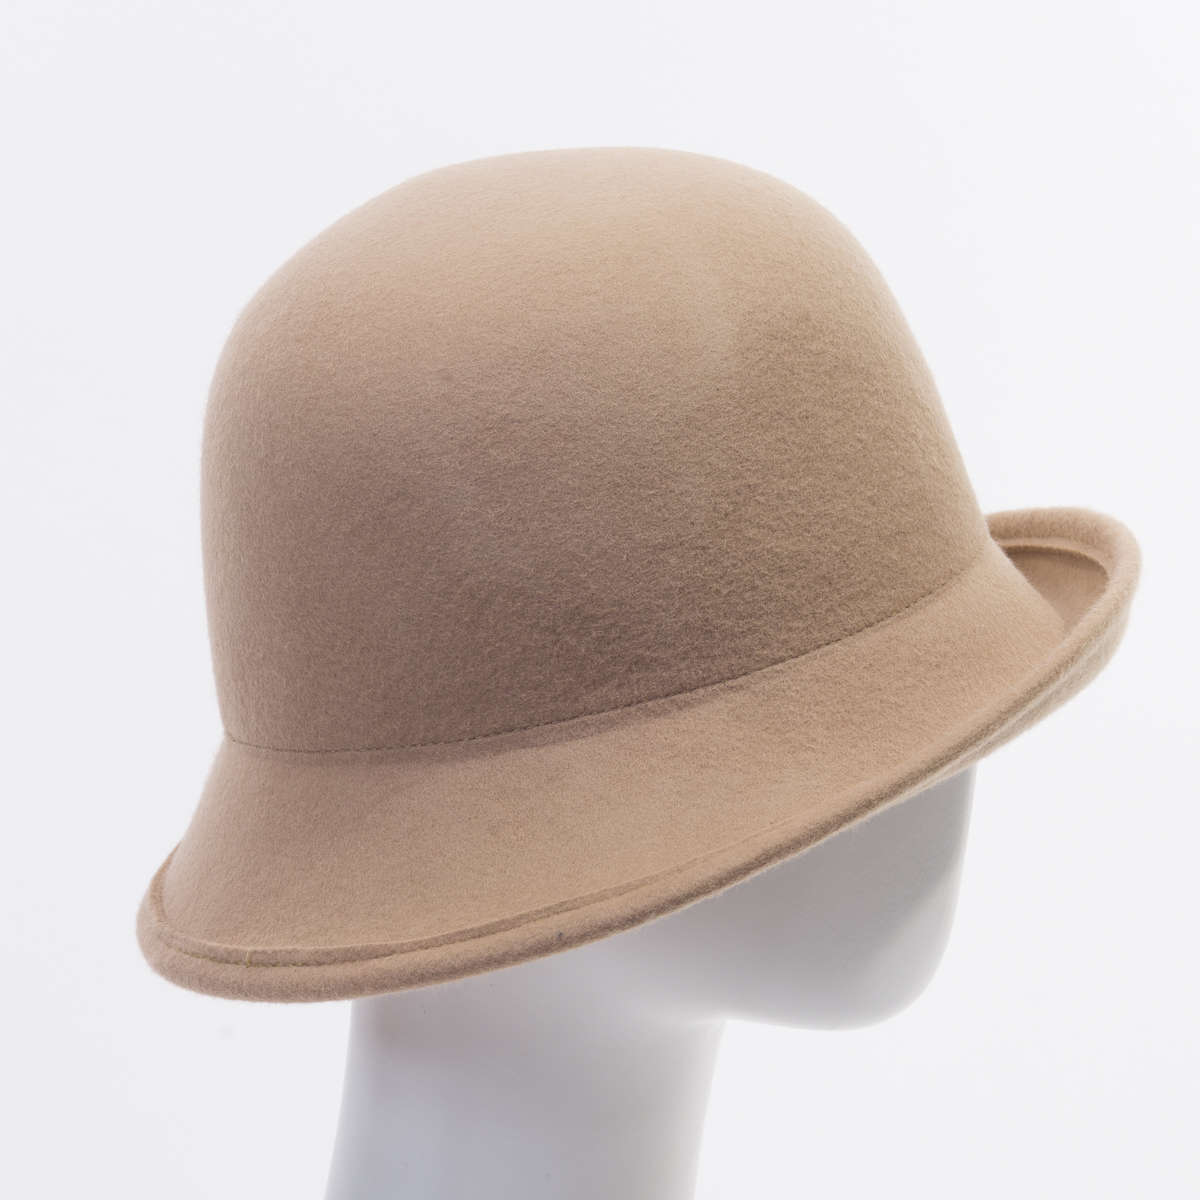 Beige Off Face Cloche Felt Plain Hats-W6015A-BEIGE- Sun ...